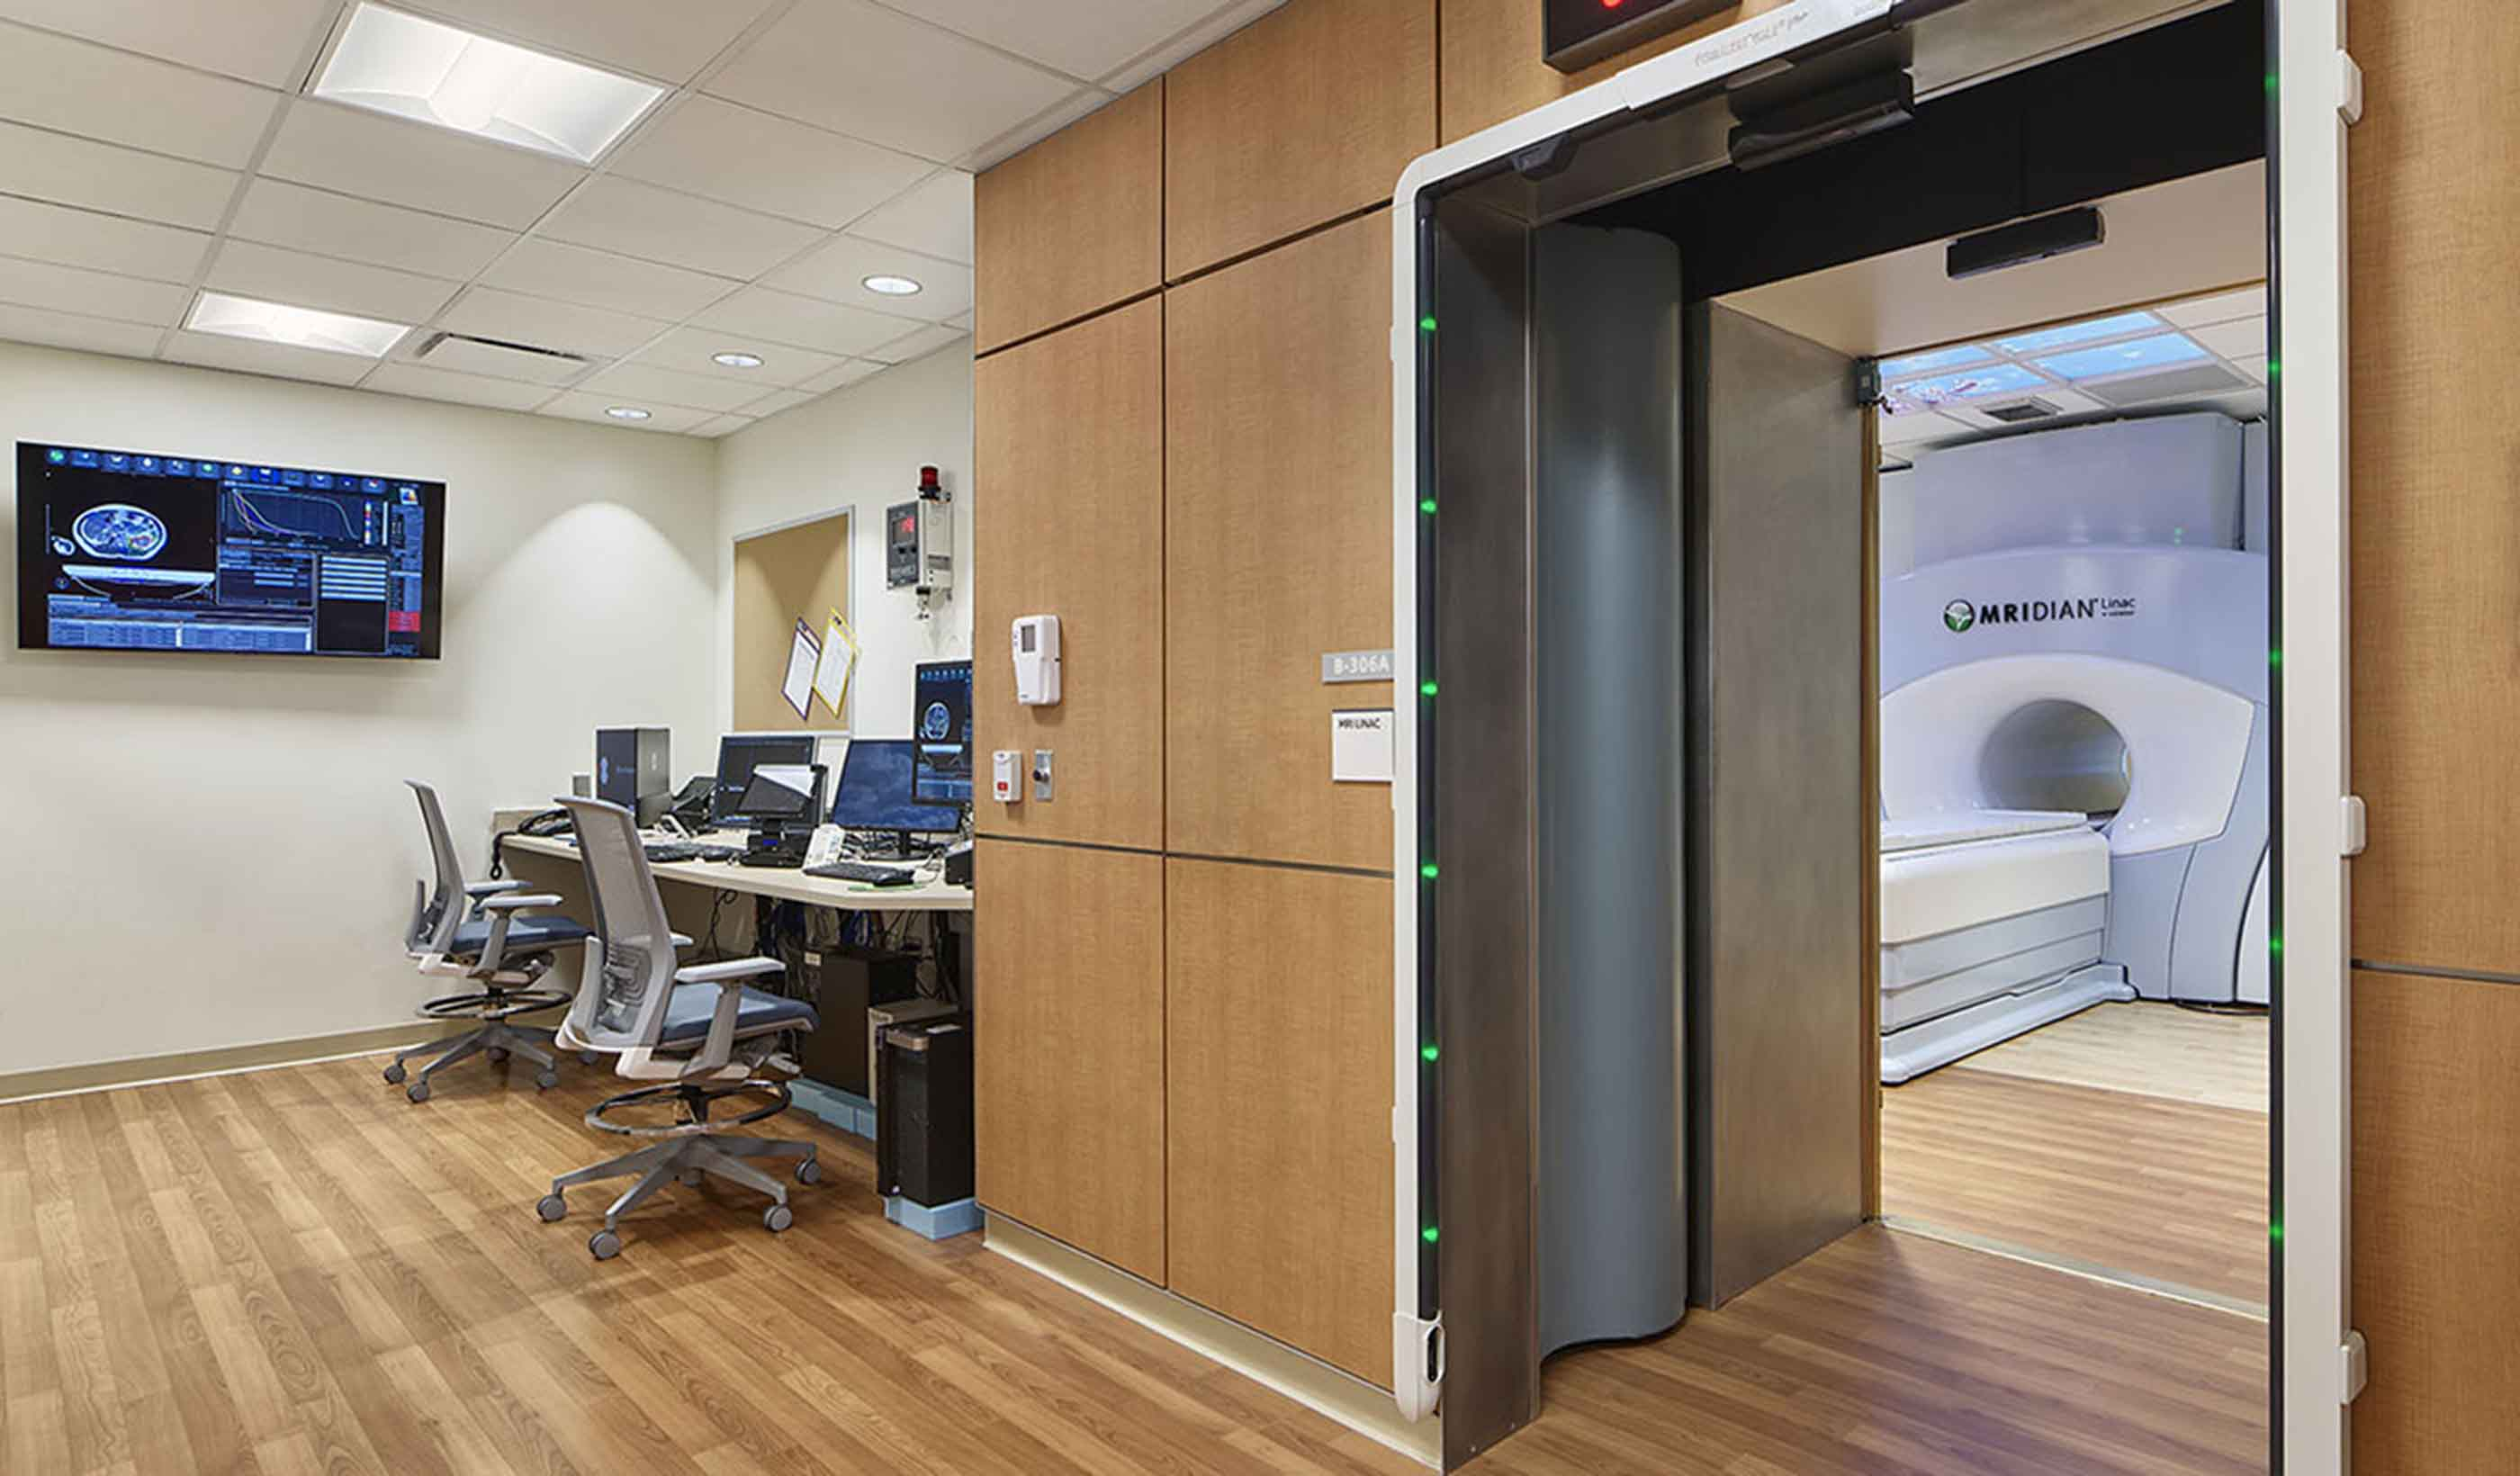 Computer imaging station just outside of the MRI room.